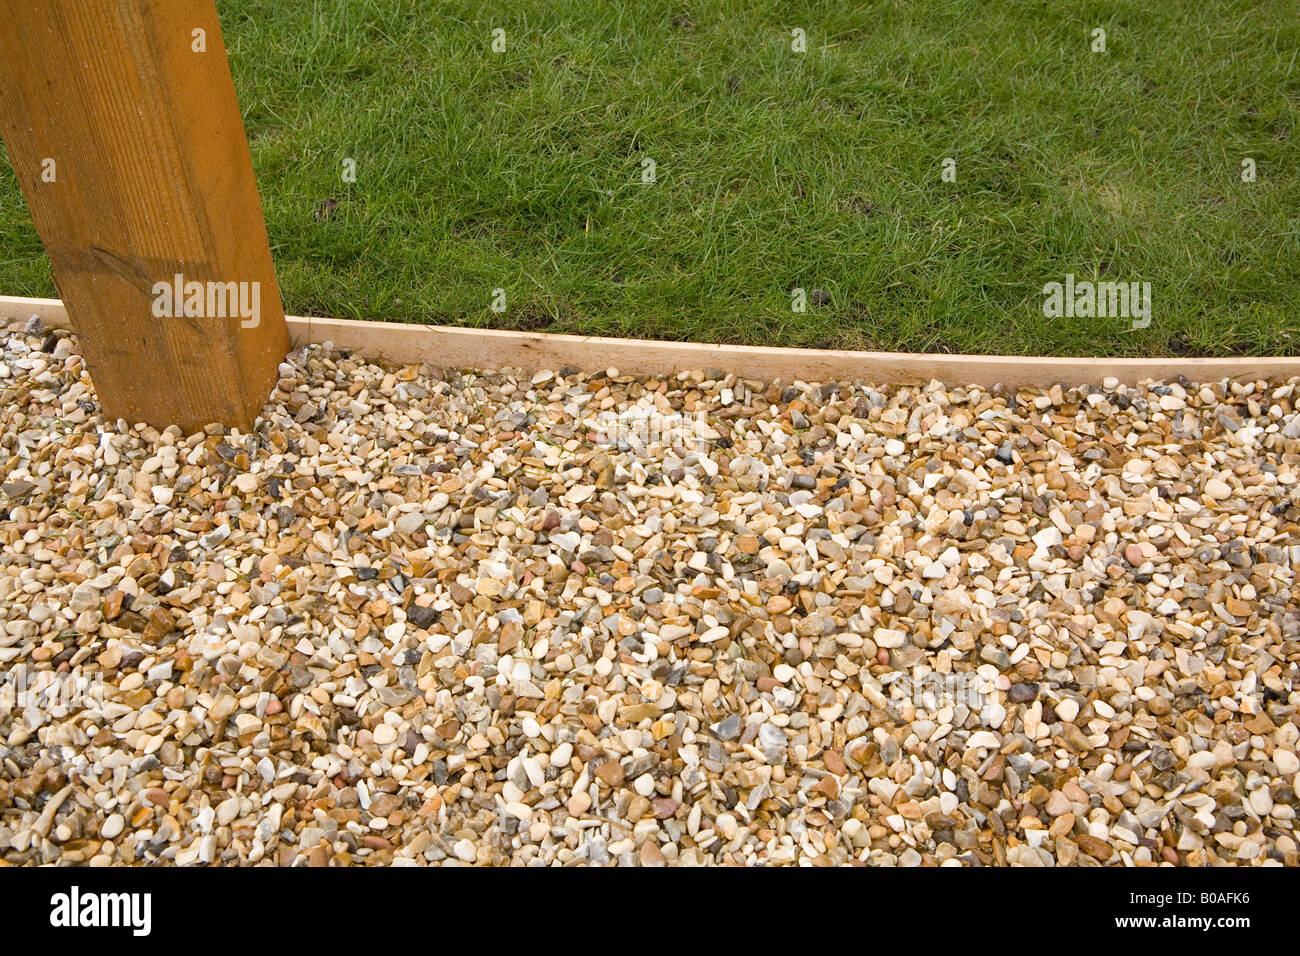 Gravel path with wooden lawn edging and pergola base Stock